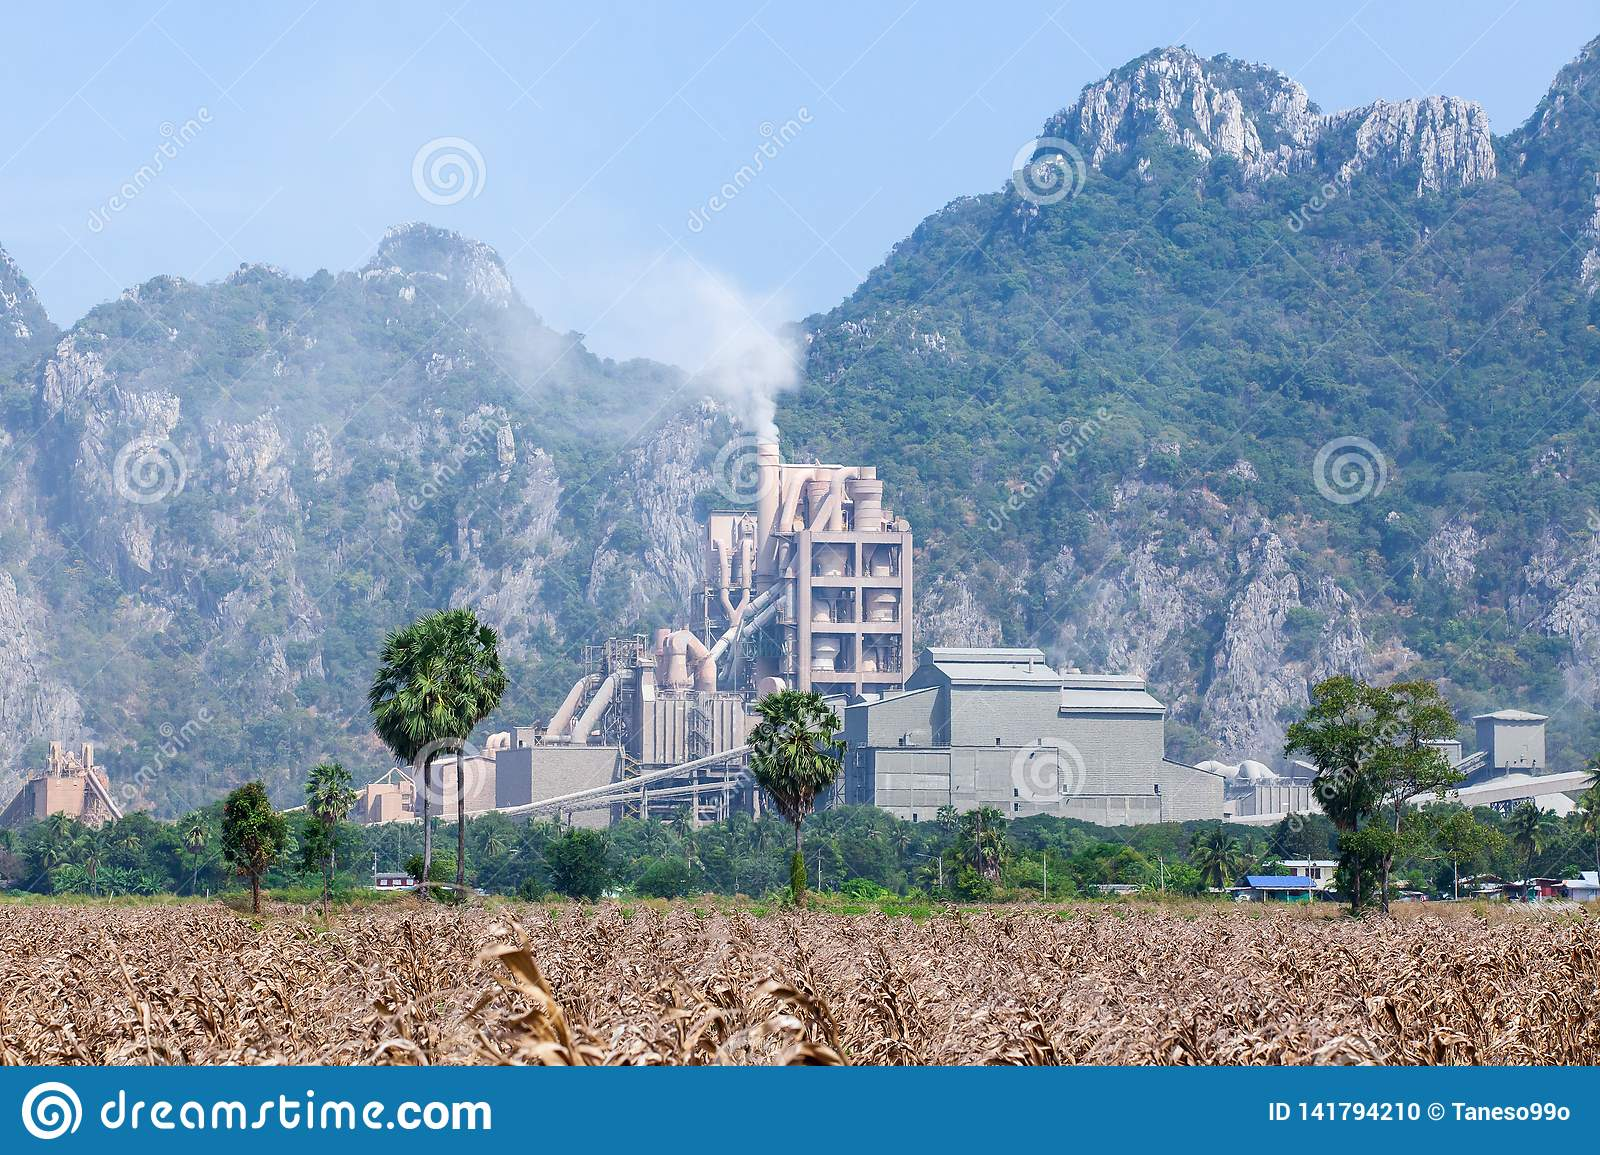 Landscape of cement factory in thailand, corn fields foregrounds, limestone mountain range backgrounds